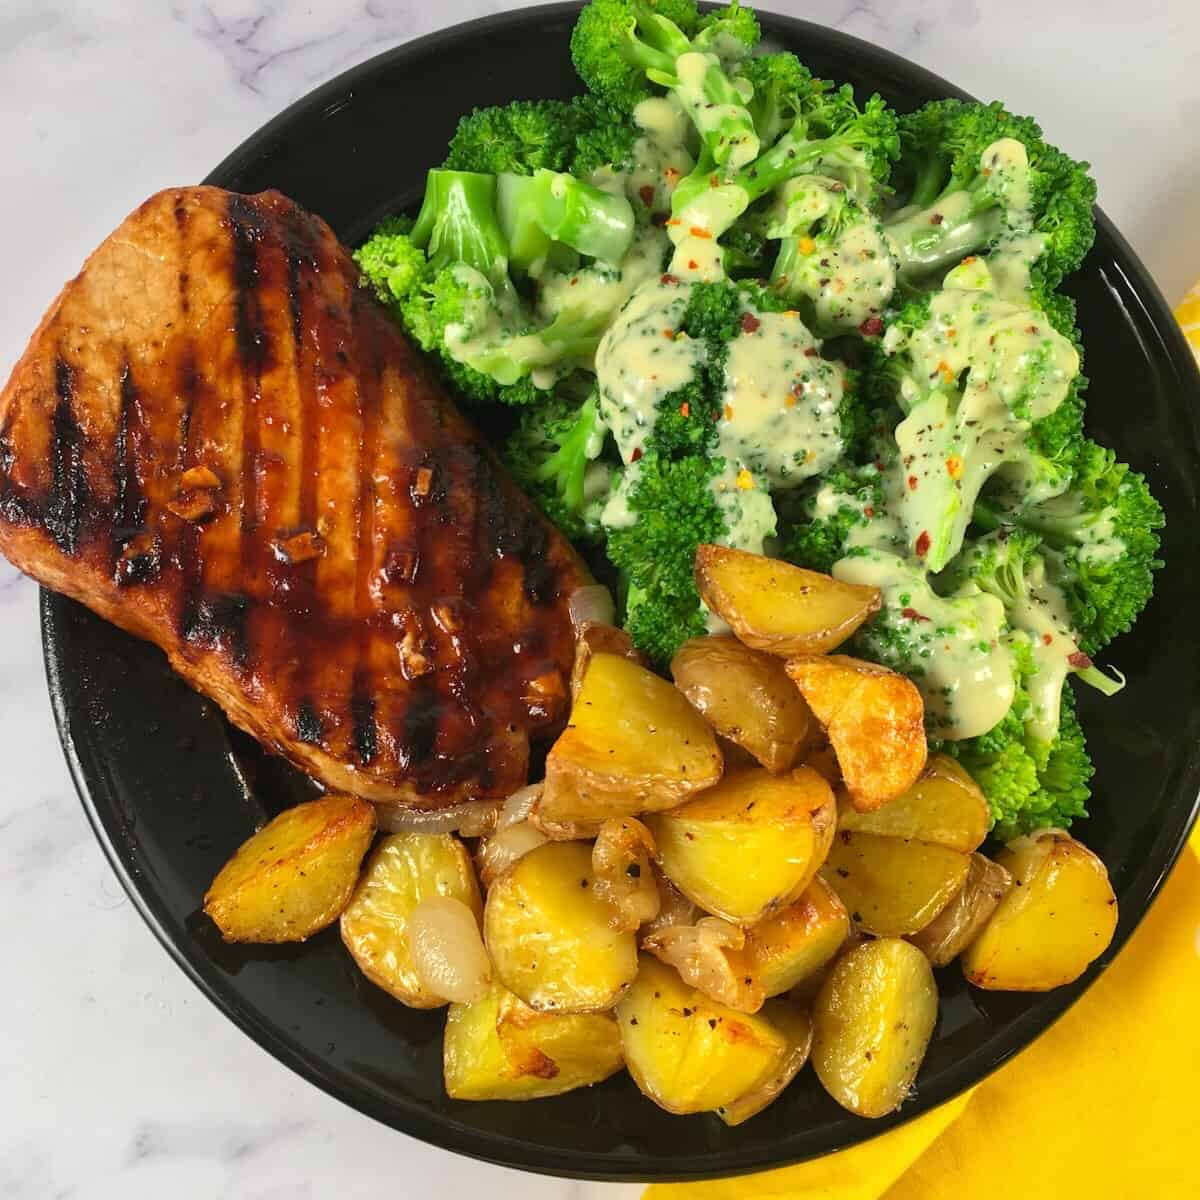 pork chop potatoes and broccoli with cheese sauce